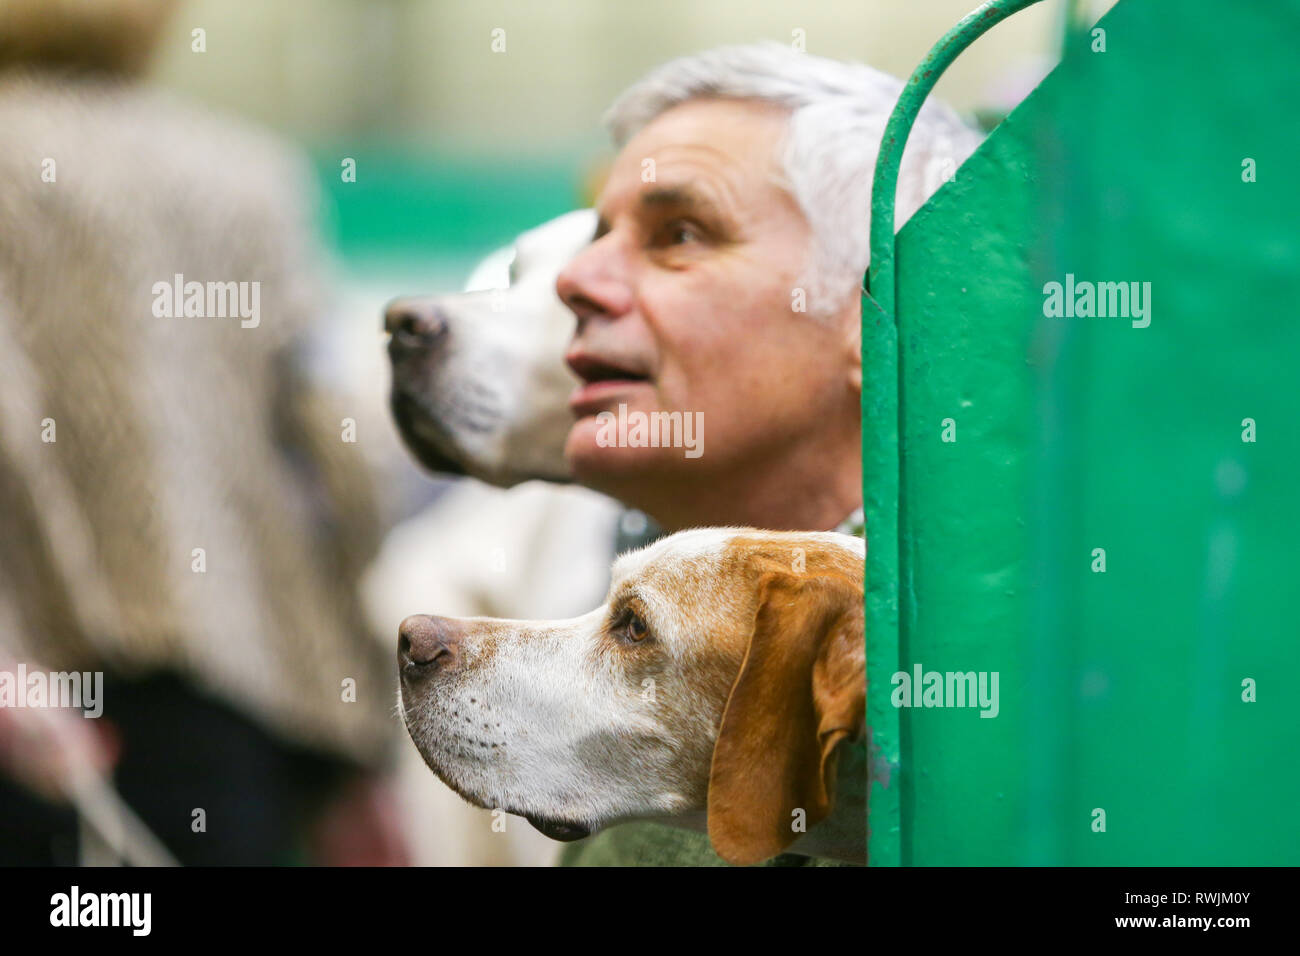 Dog Show Ring Stock Photos & Dog Show Ring Stock Images - Alamy